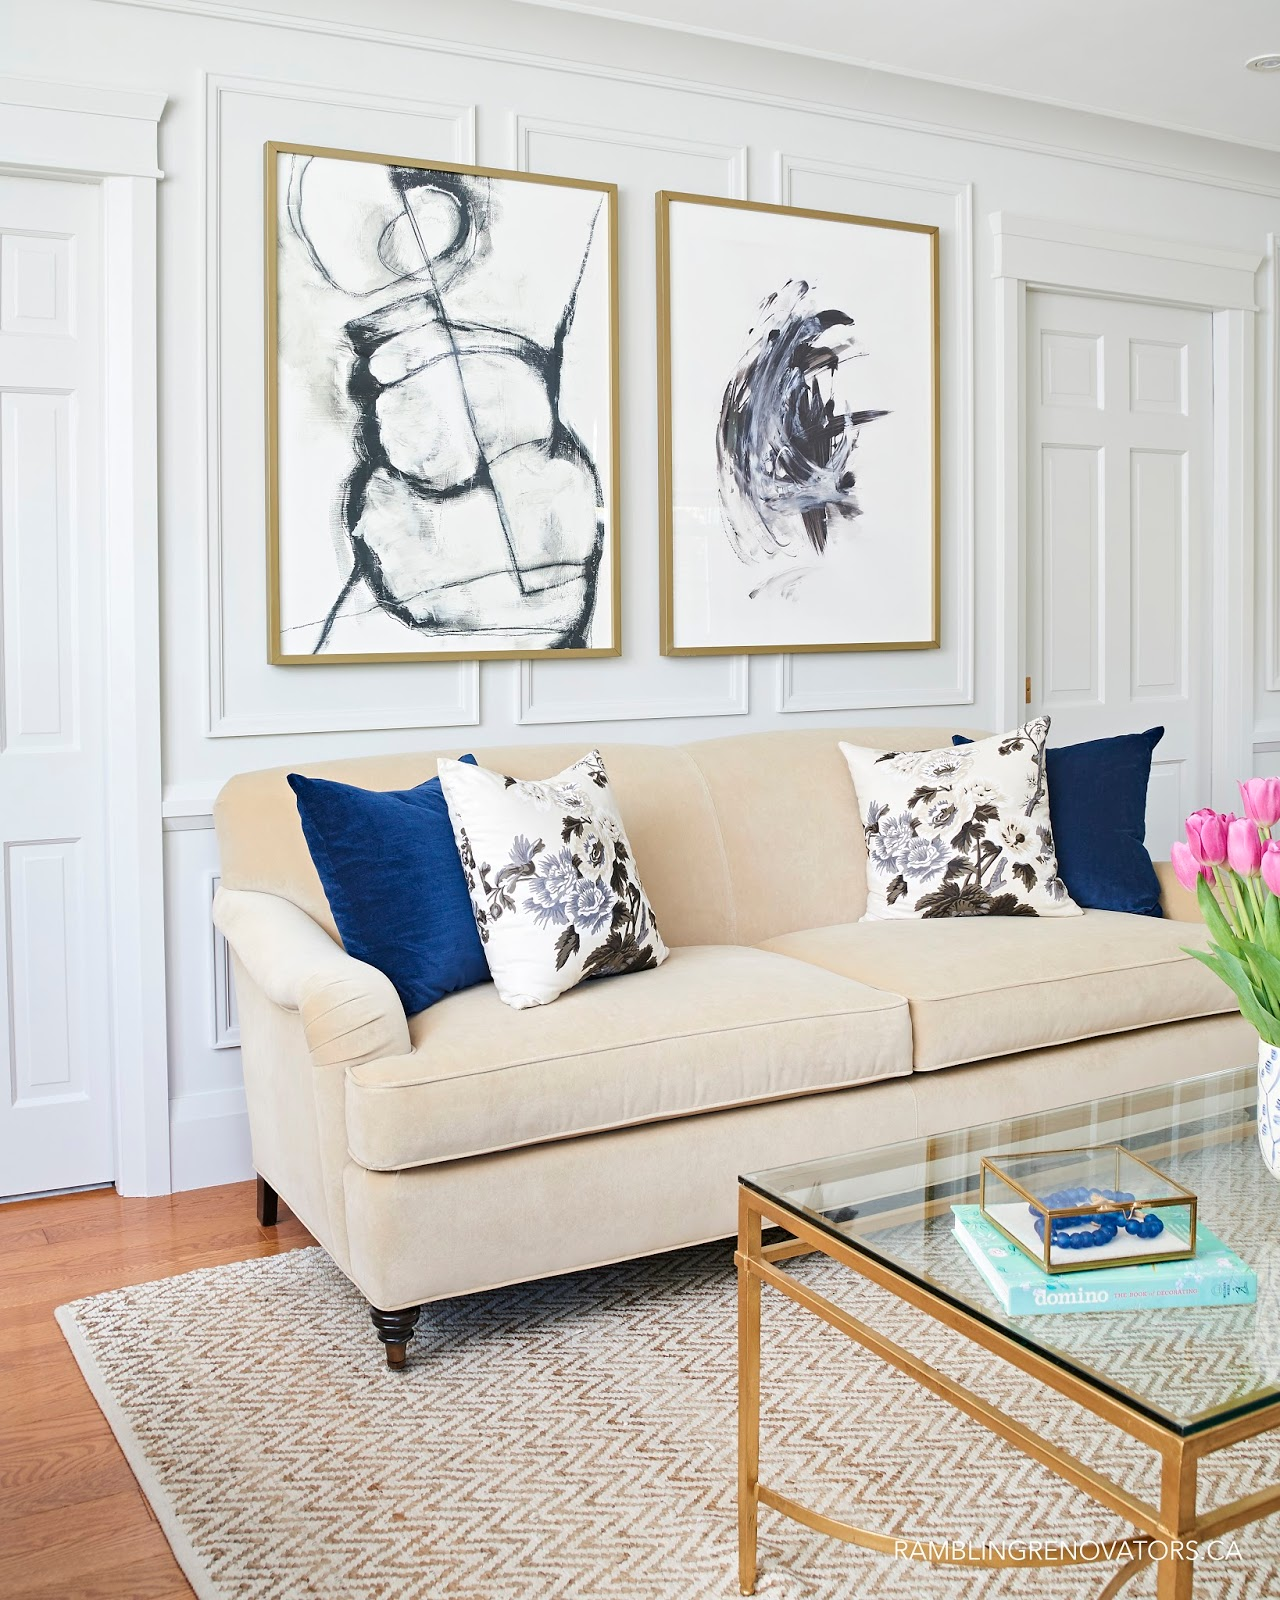 Living Room Designs Traditional: Sarah M. Dorsey Designs: Friday Five